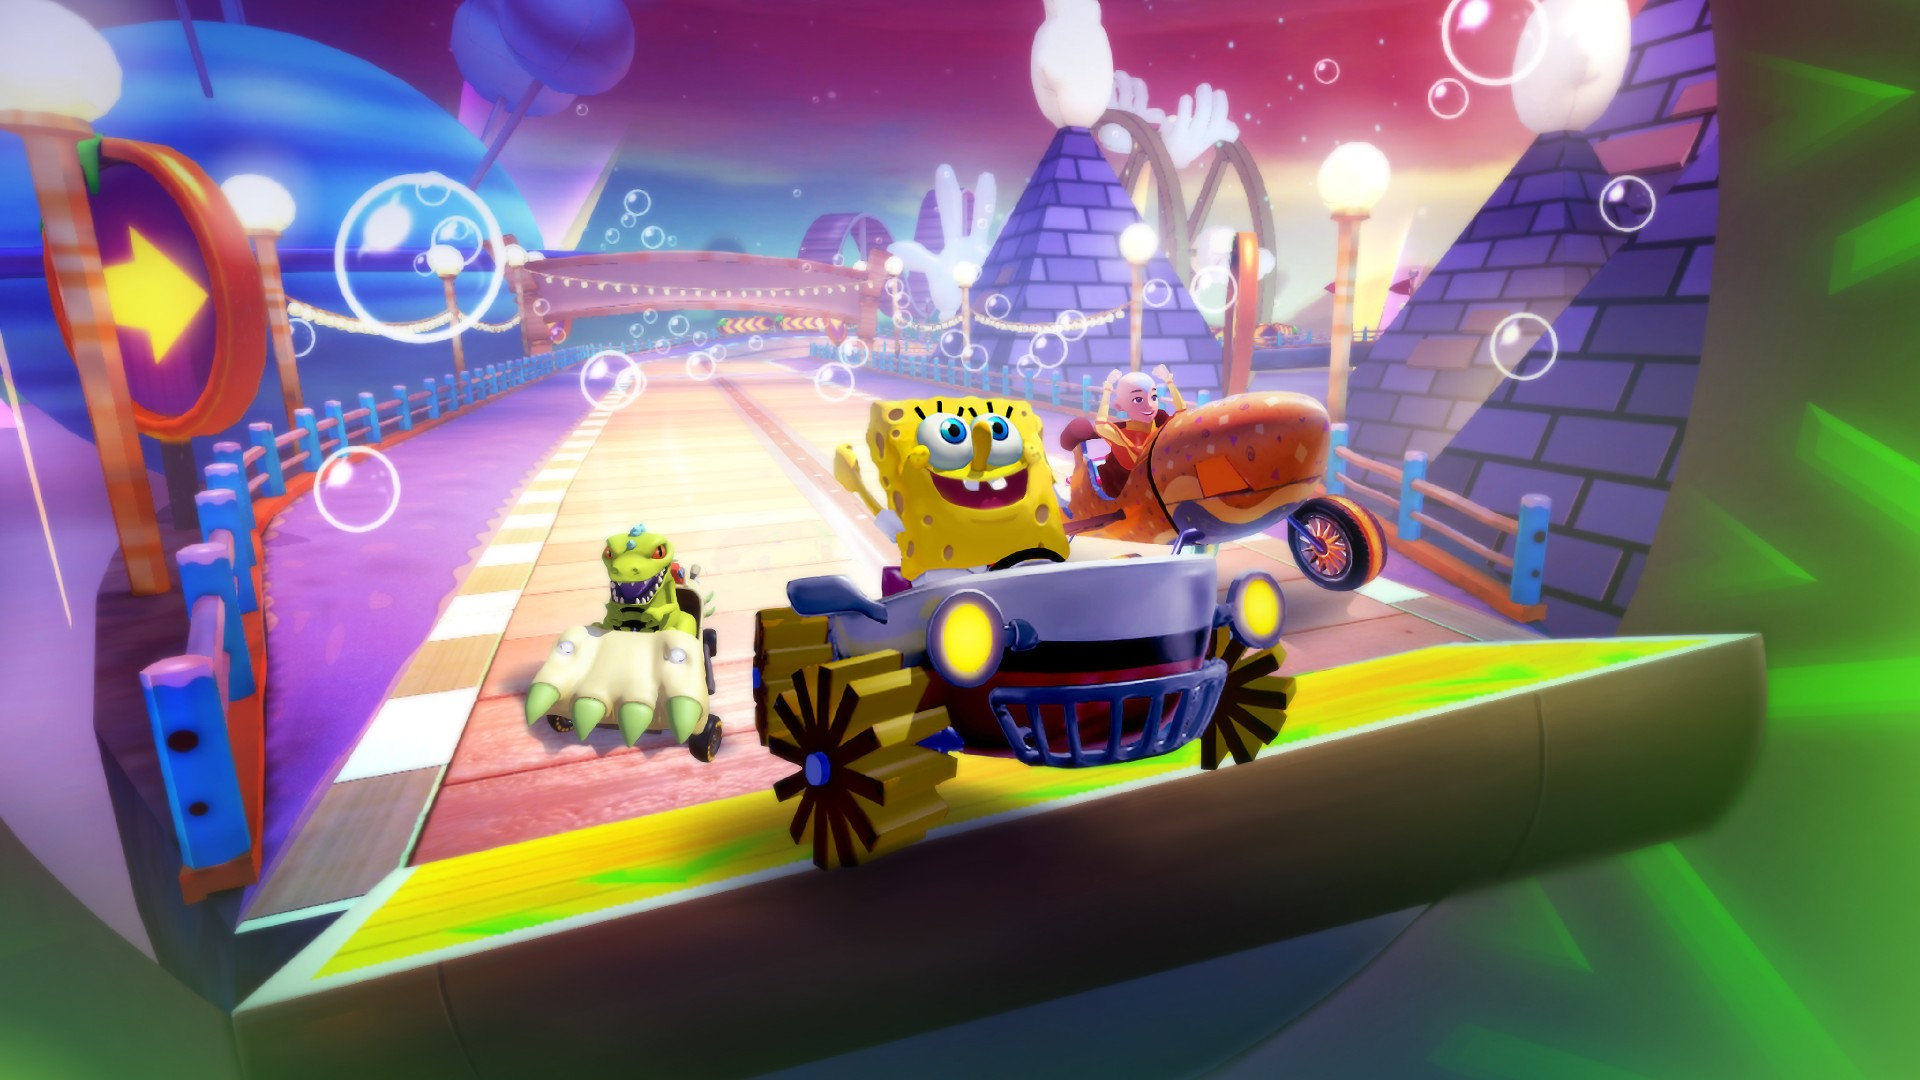 Video For 30 Playable Racers and 70 Pit Crew Members Featured in Nickelodeon Kart Racers 2, Available Now on Xbox One